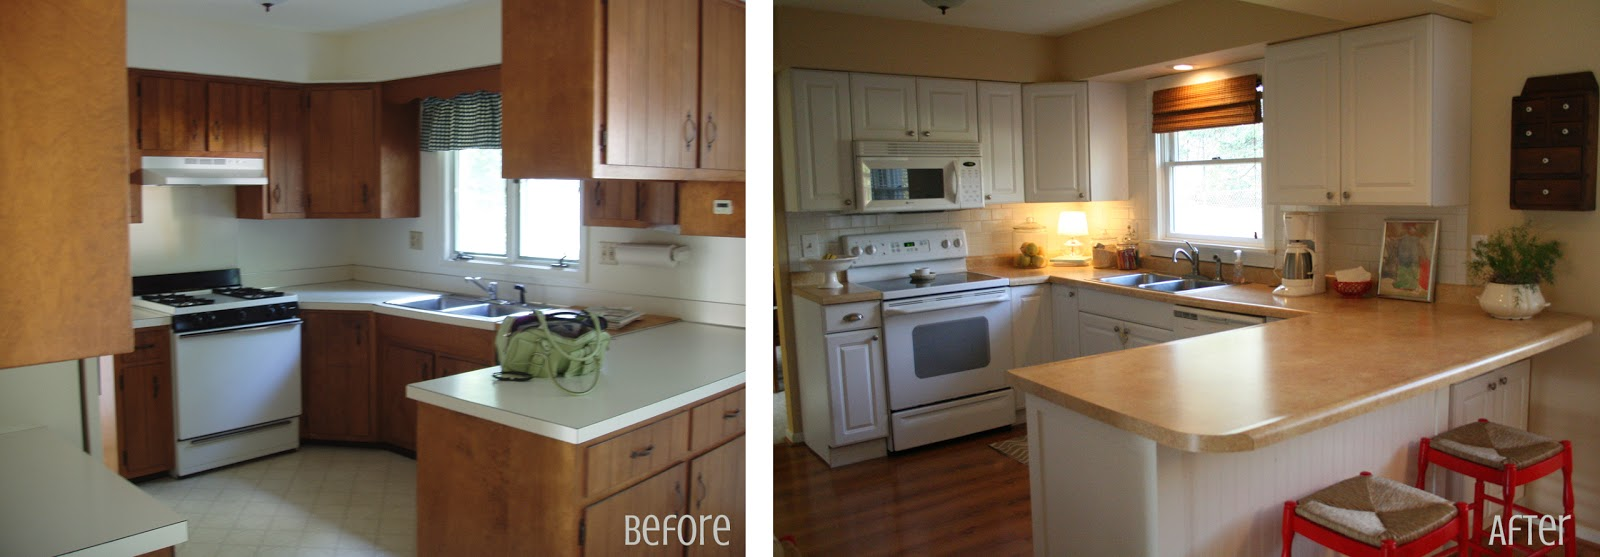 Graphic made kitchen before after for Kitchen remodel before after